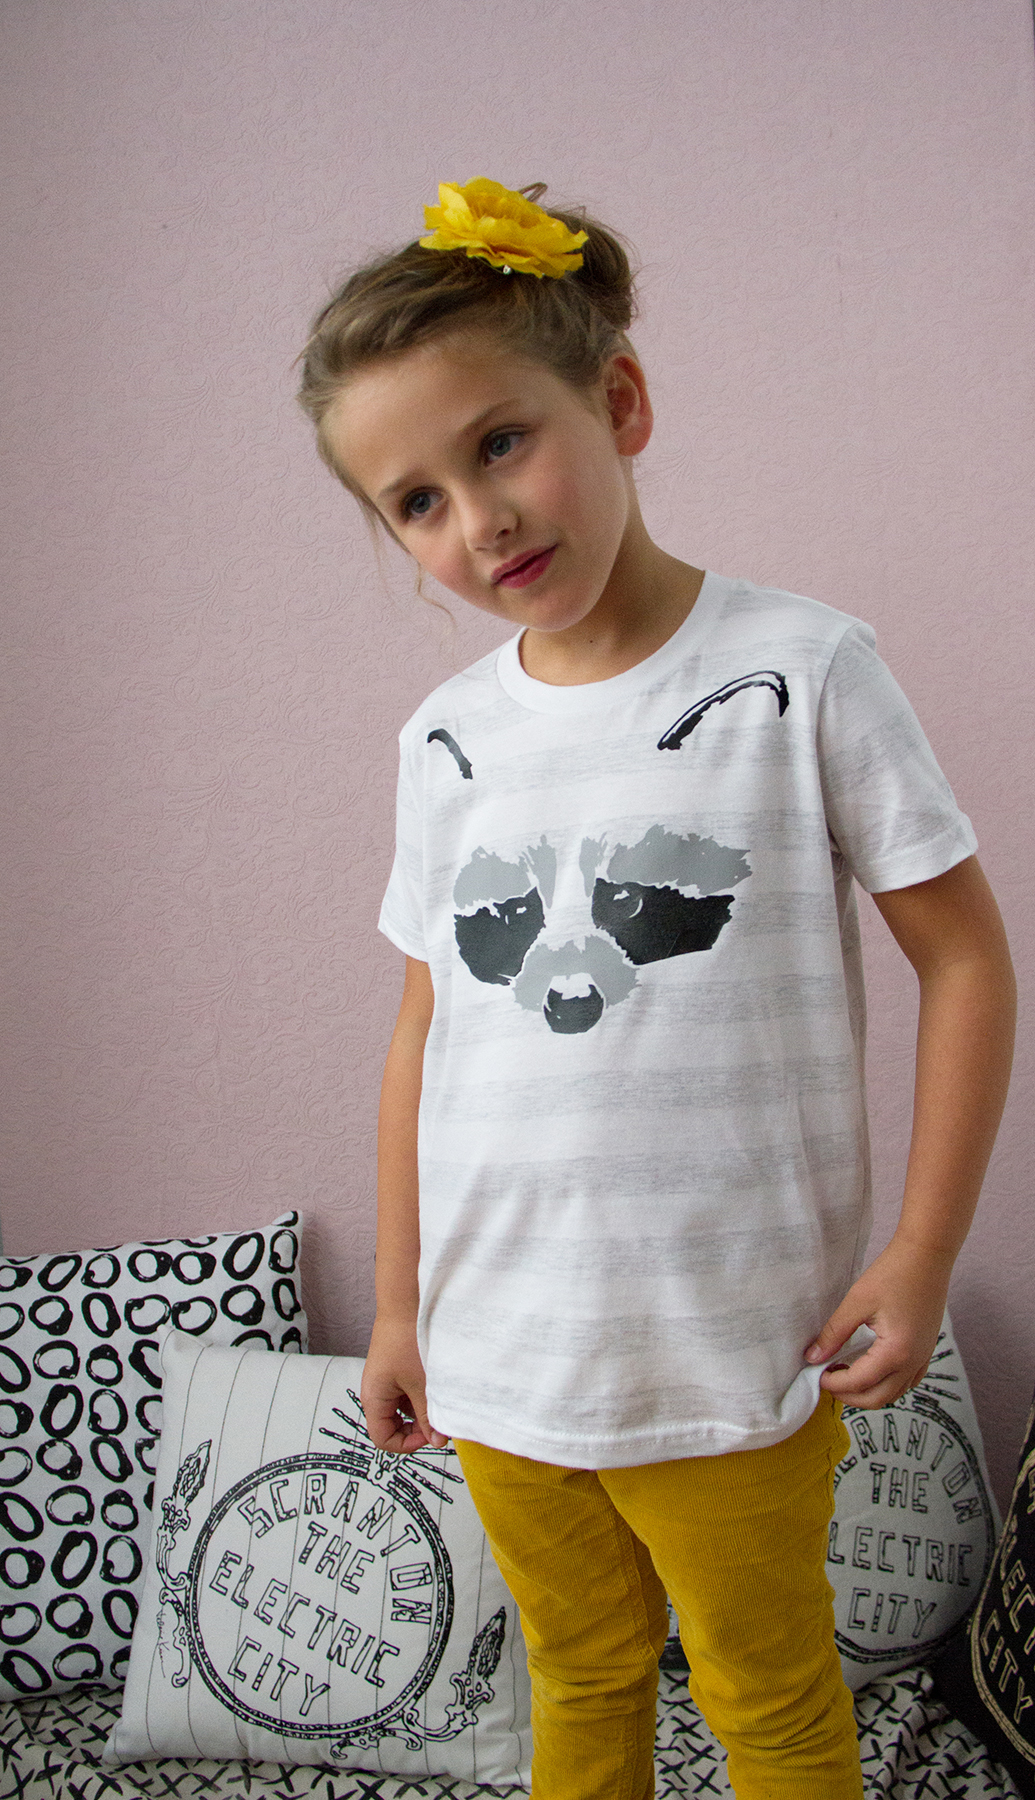 Youth's Raccoon Tshirt